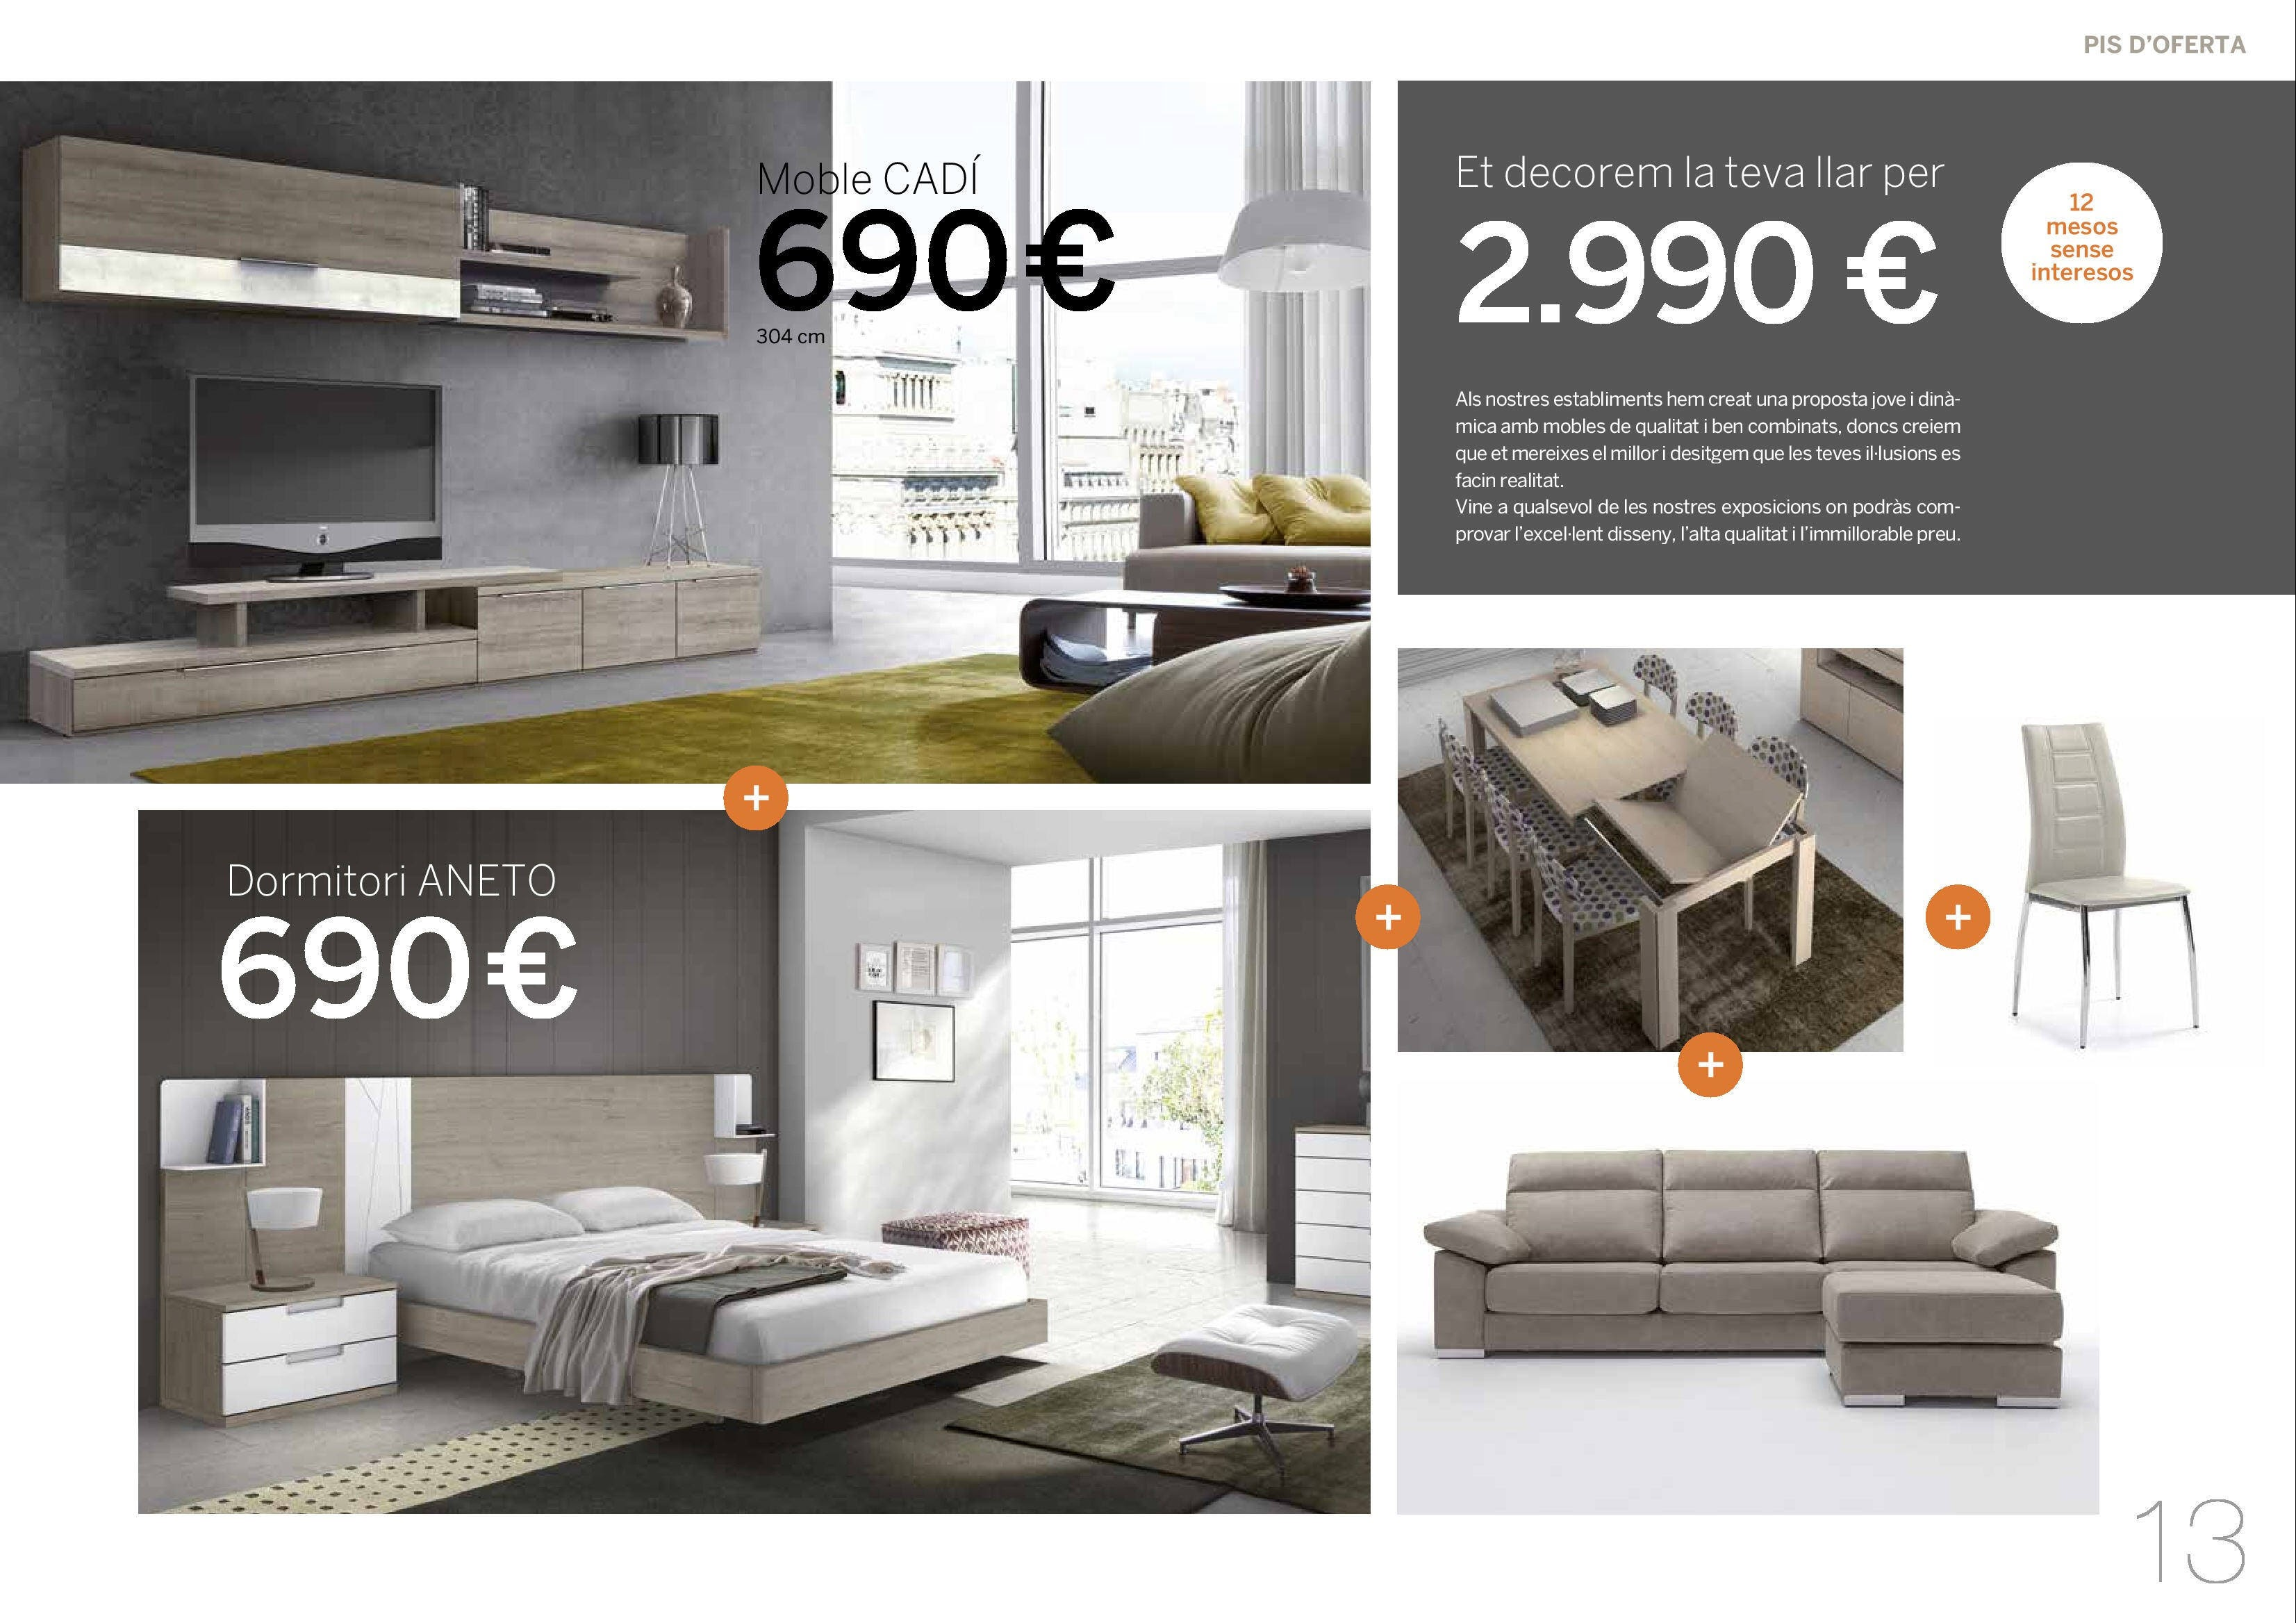 Photo: OFERTA PISO COMPLETO 2990€: COMEDOR+MESA+4SILLAS+SOFA CHAISELONGUE+CAMA 150 Y 2 MESITAS